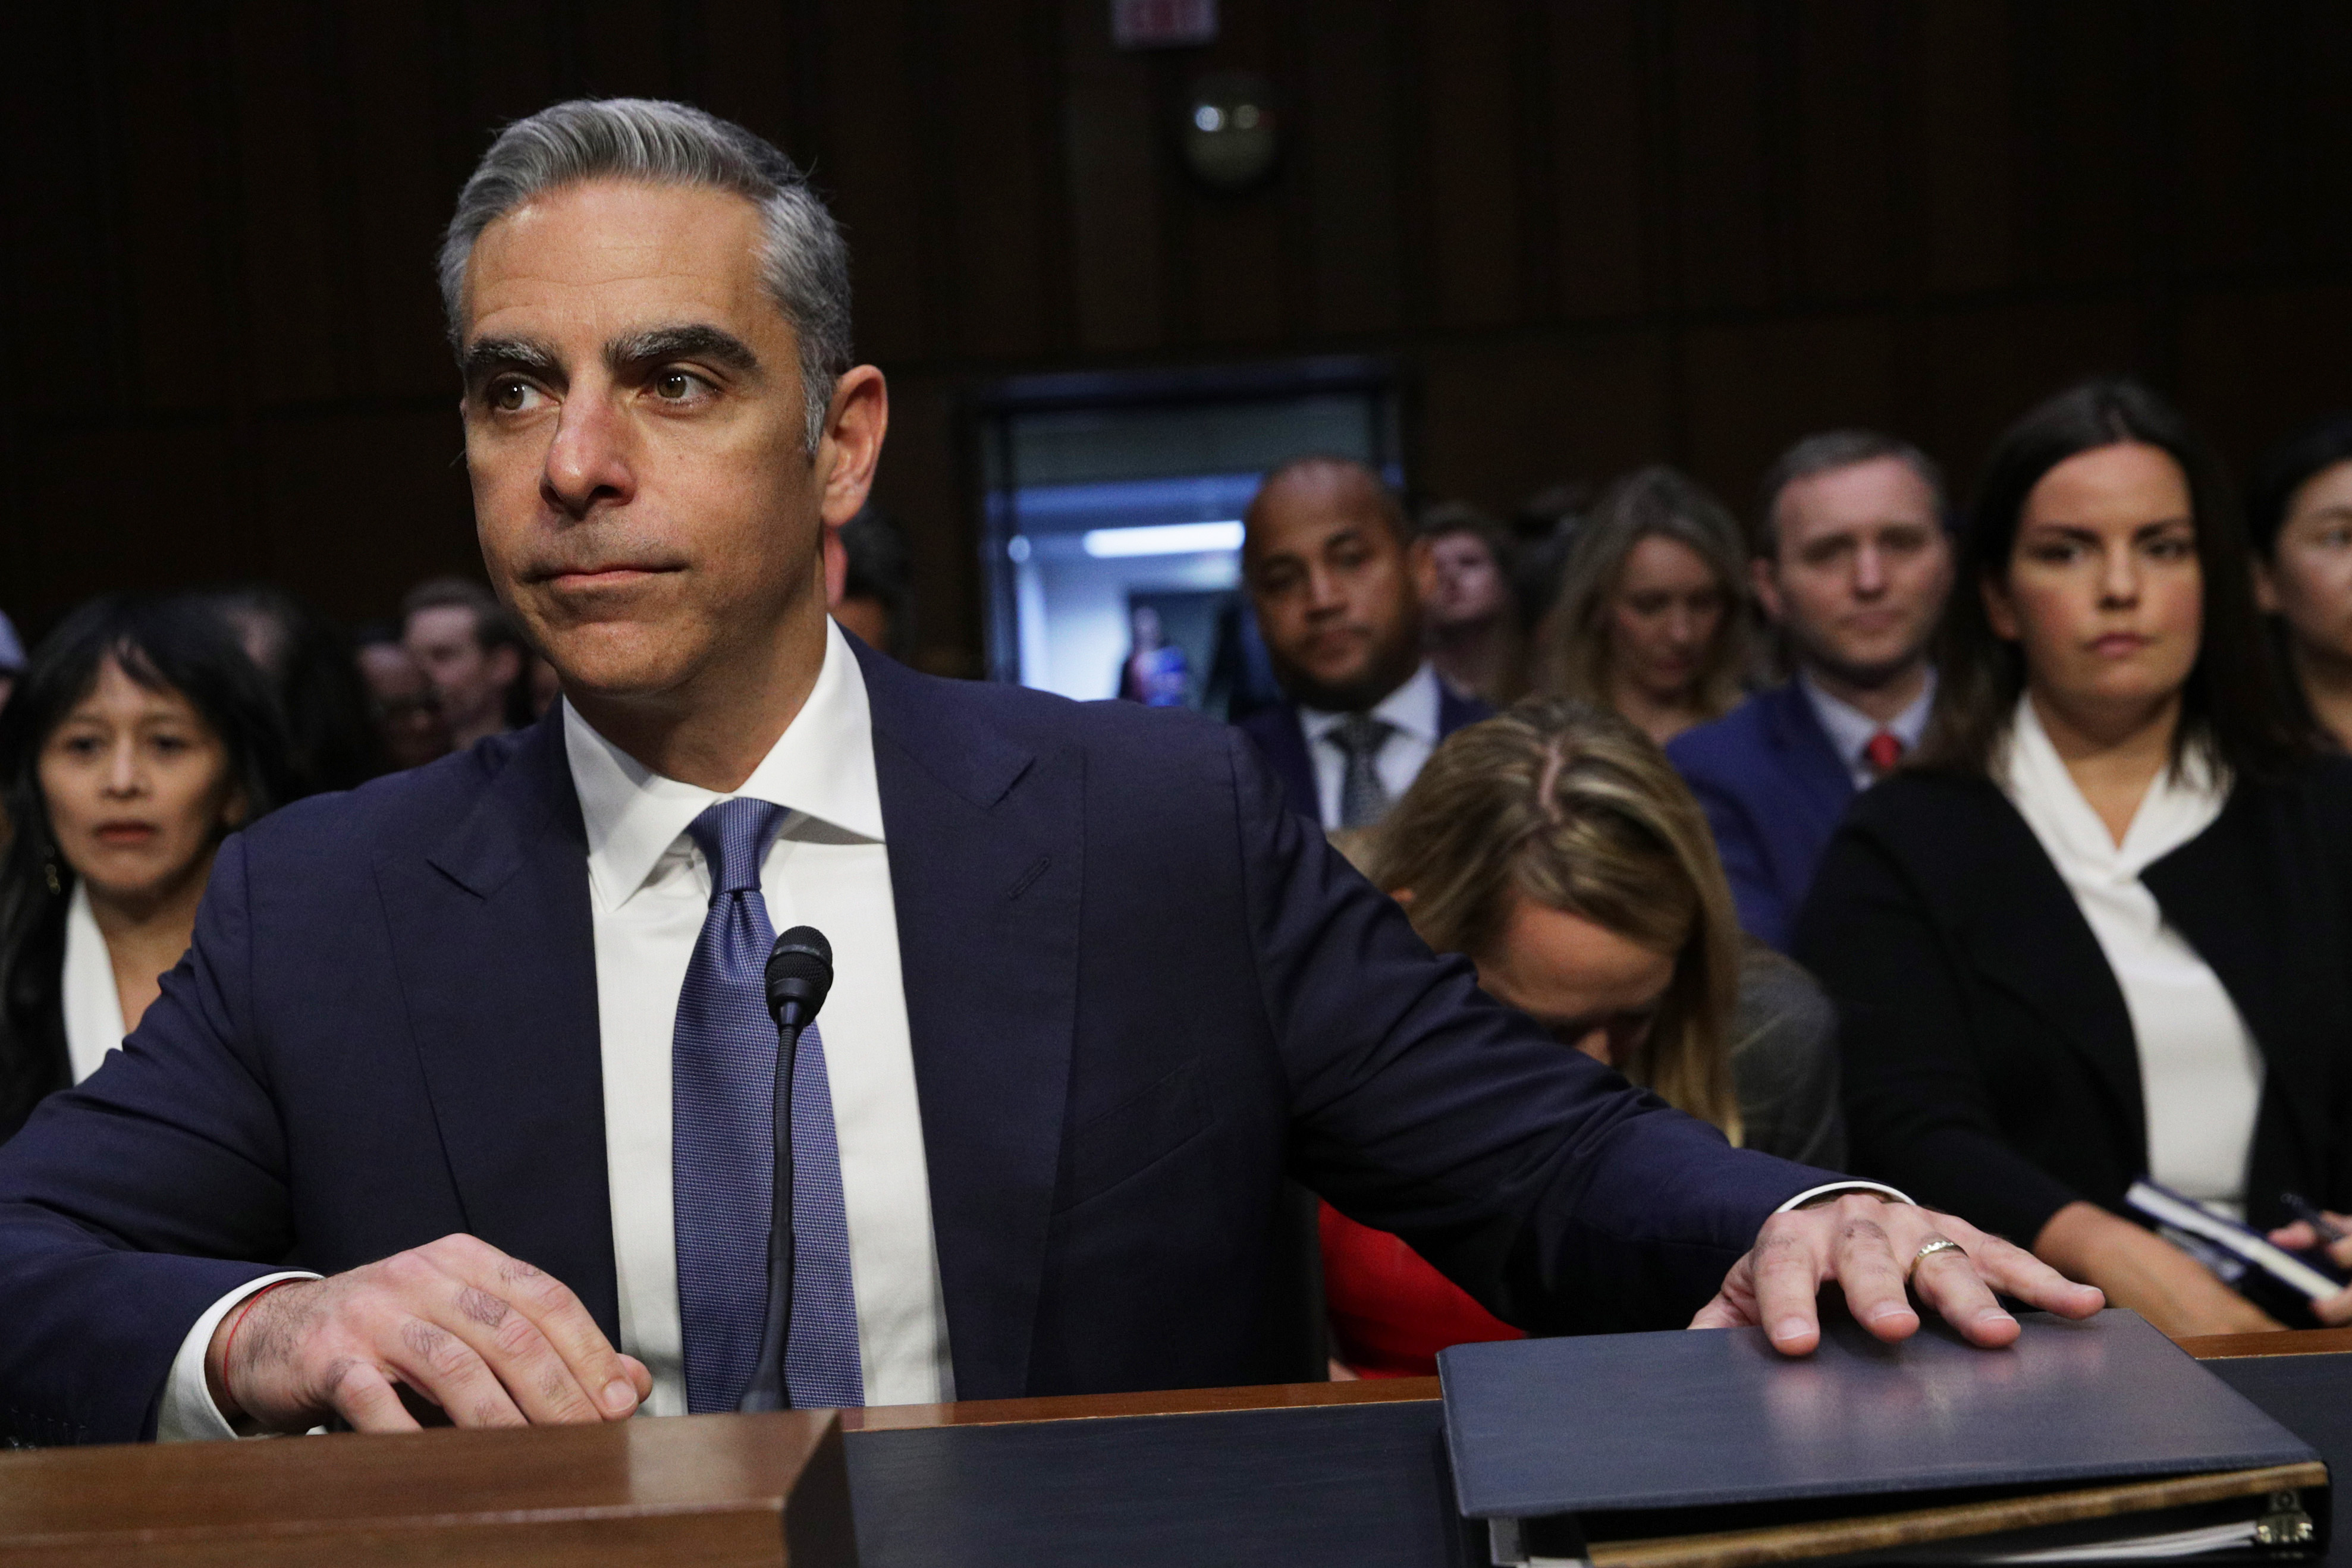 Head of Facebook's Calibra David Marcus waits for the beginning of a hearing before Senate Banking, Housing and Urban Affairs Committee July 16, 2019 on Capitol Hill in Washington, DC. The committee held the hearing on